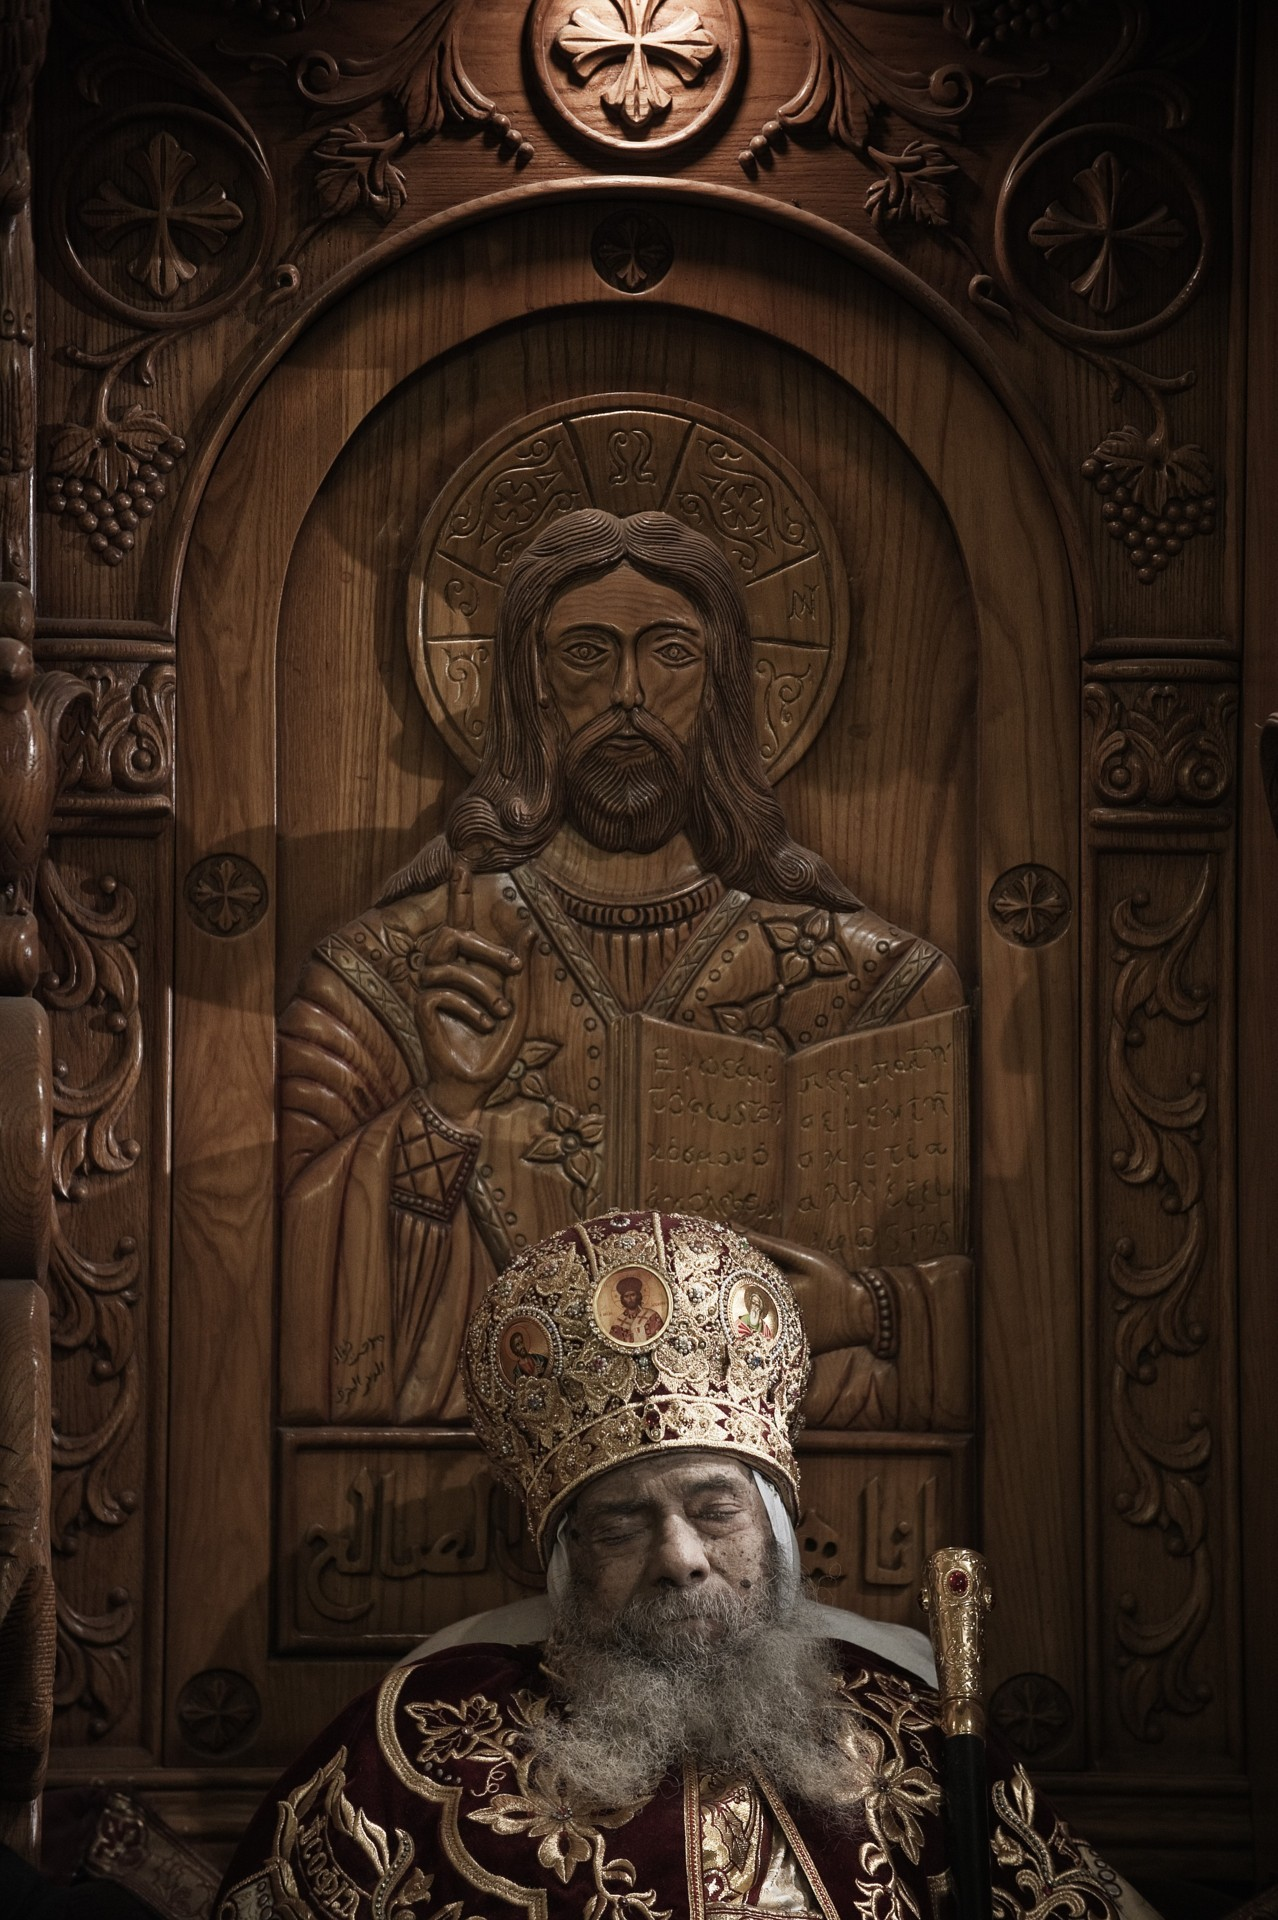 Pope Shenouda III at Rest at St. Mark's by Trent Gilliss, senior editor The body of Pope Shenouda III, the spiritual leader of the Coptic Orthodox Church, sits dressed in formal robes on a wooden throne at Saint Mark's Coptic Cathedral in Cairo's al-Abbassiya district. Mourners are paying their respects to the man who reigned over the Middle East's largest Christian minority group. He was 88. After a long illness, he died on Saturday and will be buried today at St. Bishoy Monastery in Wadi Natrun in the Nile Delta where he spent his time in exile after a dispute with late president Anwar Sadat. Photo by Gianluigi Guercia/AFP/Getty Images)